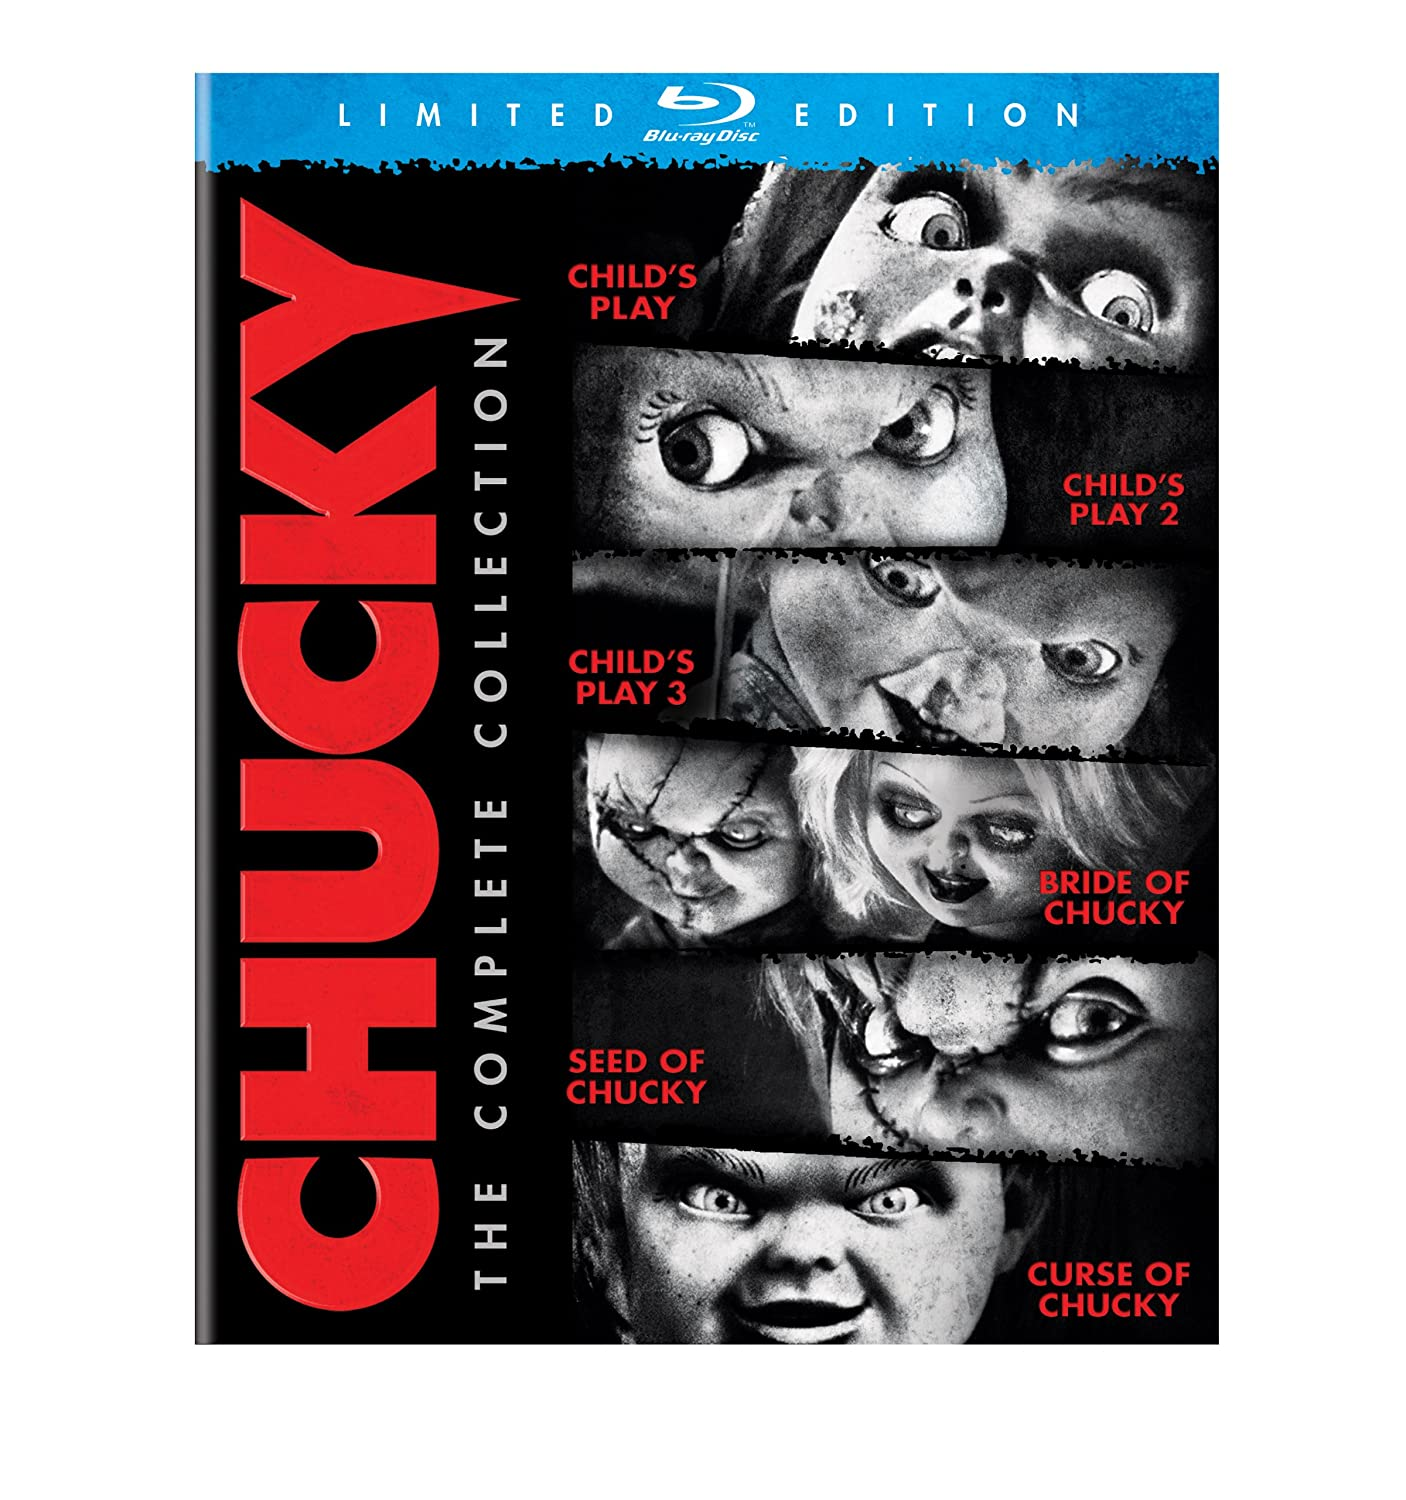 Chucky The Complete Collection Blu Ray Catherine Hicks Alex Vincent Justin Whalin Jennifer Tilly Brad Dourif Chris Sarandon Jenny Agutter Perrey Reeves Katherine Heigl Gerrit Graham Jeremy Sylvers Billy Boyd Fiona Dourif